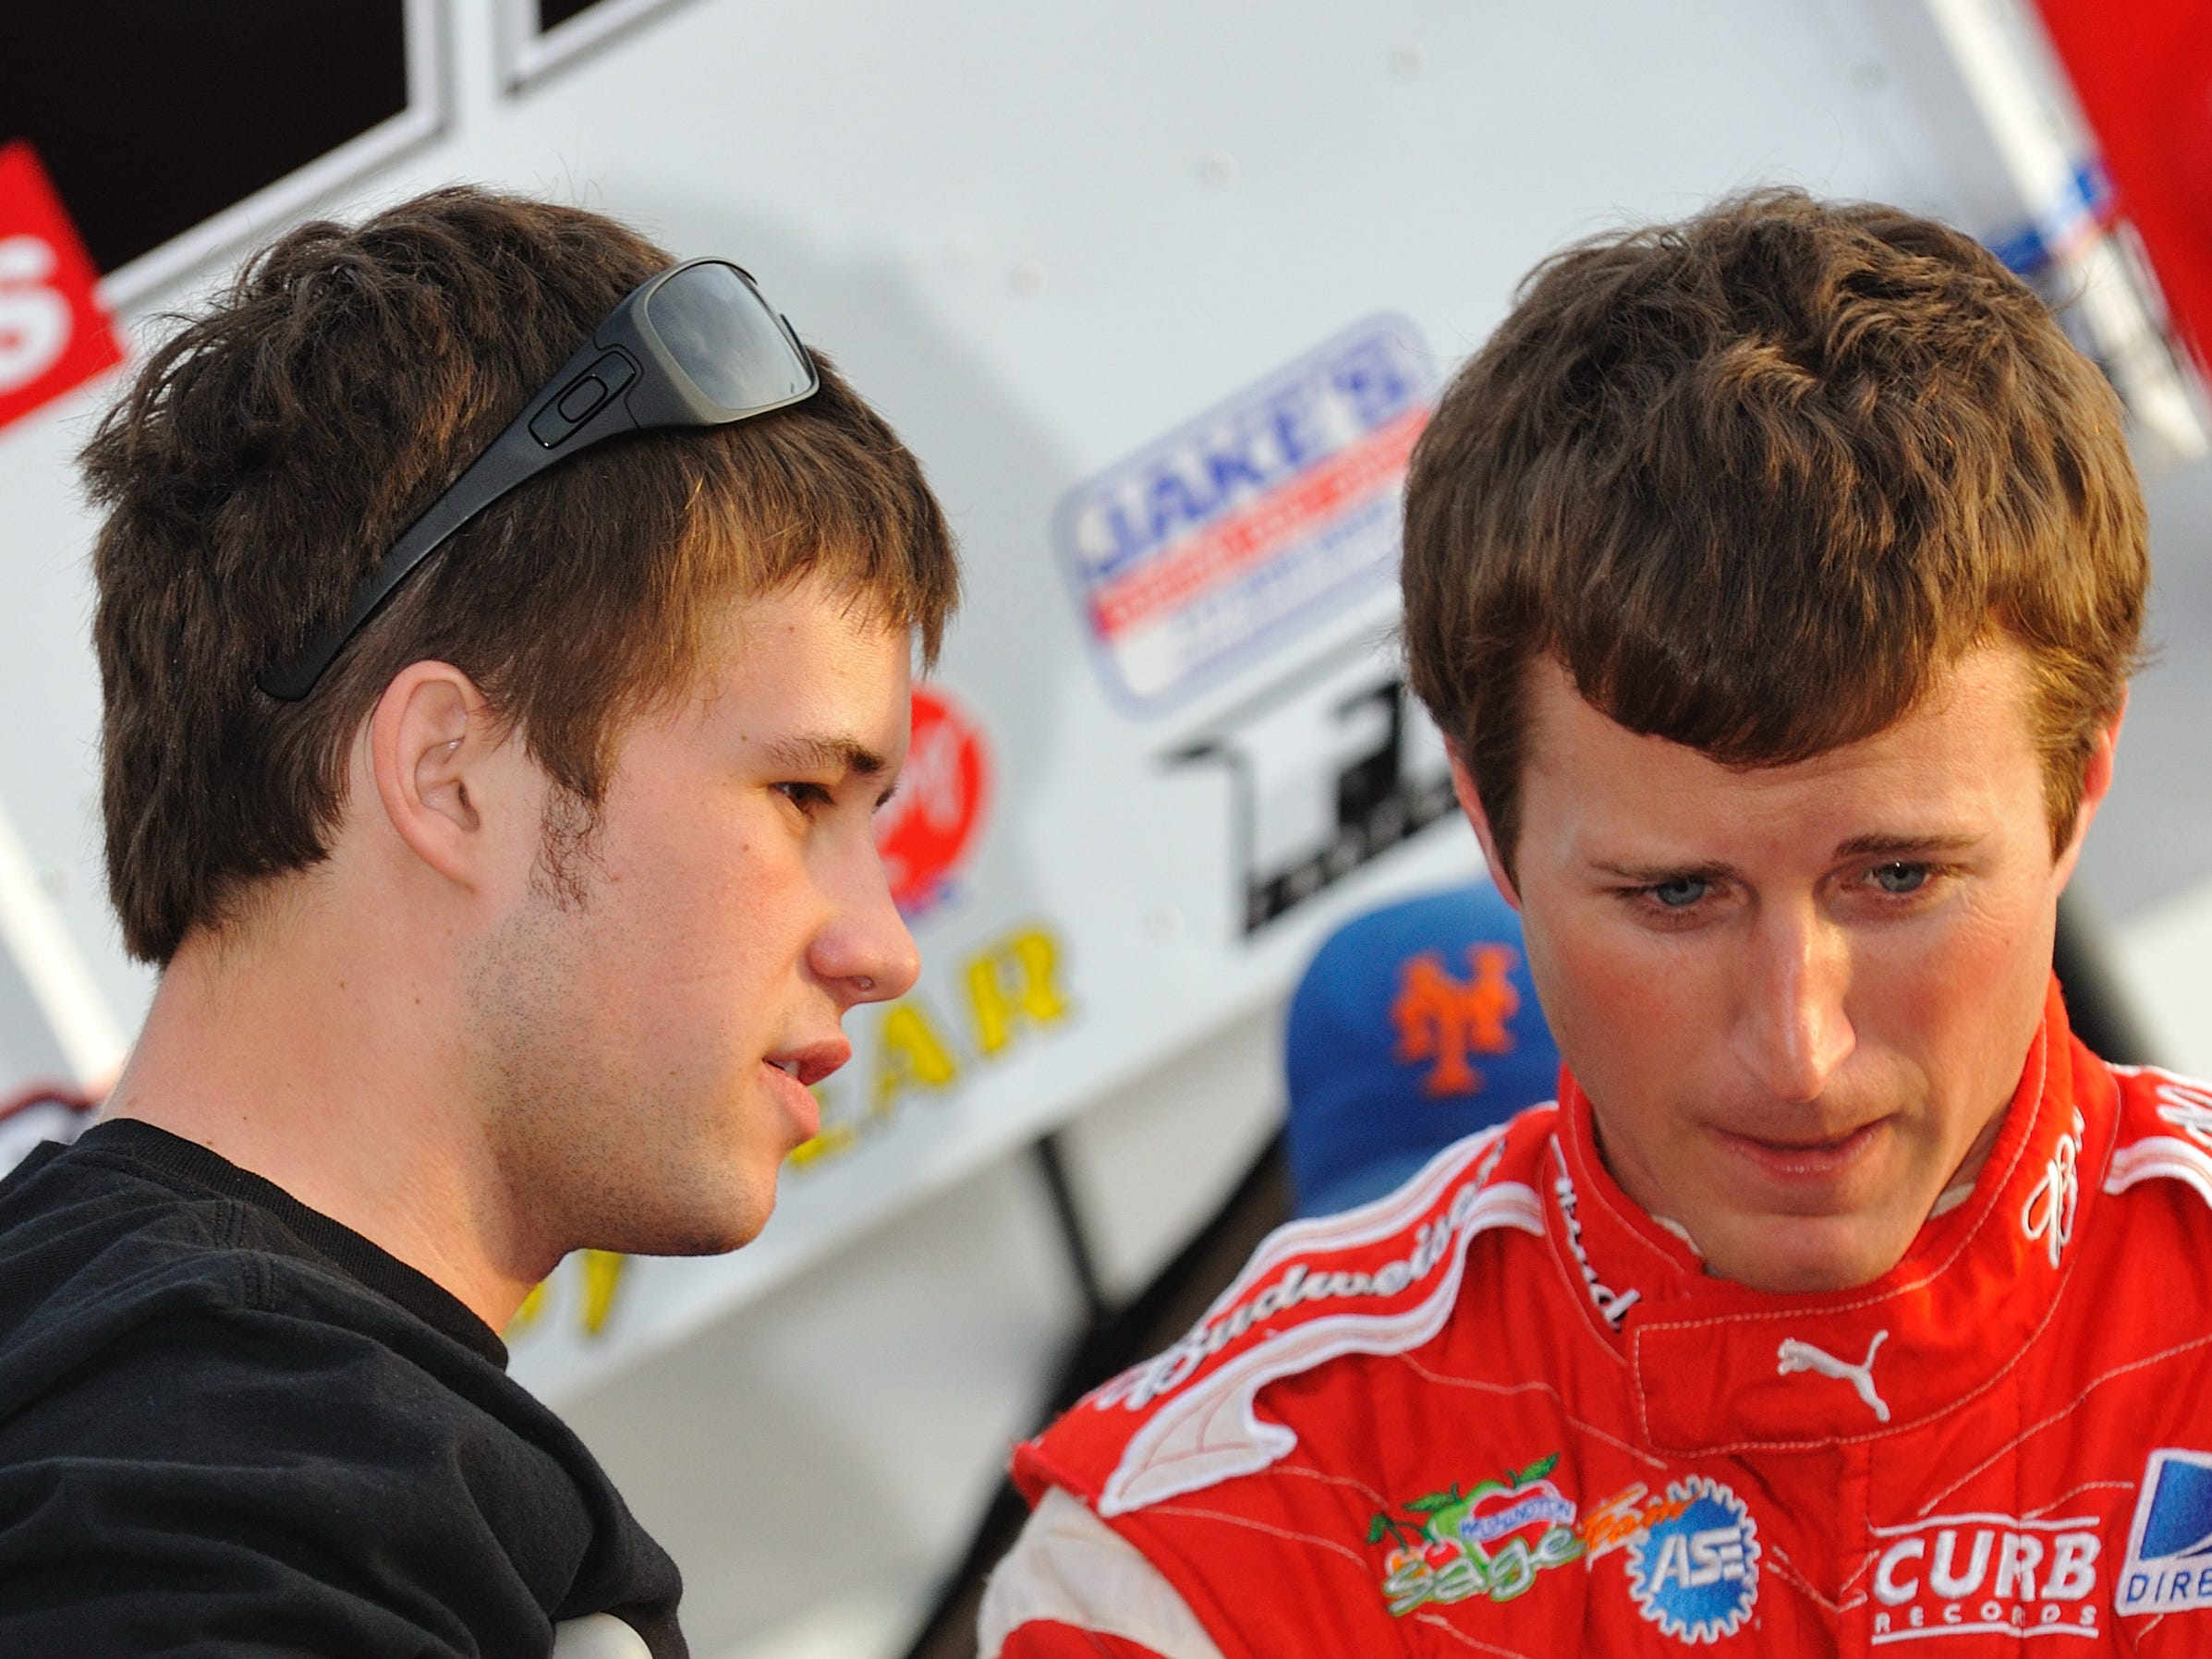 Red Lion's Cody Darrah (left) talks to car owner Kasey Kahne (right) before racing action at Williams Grove Speedway on April 2, 2010.